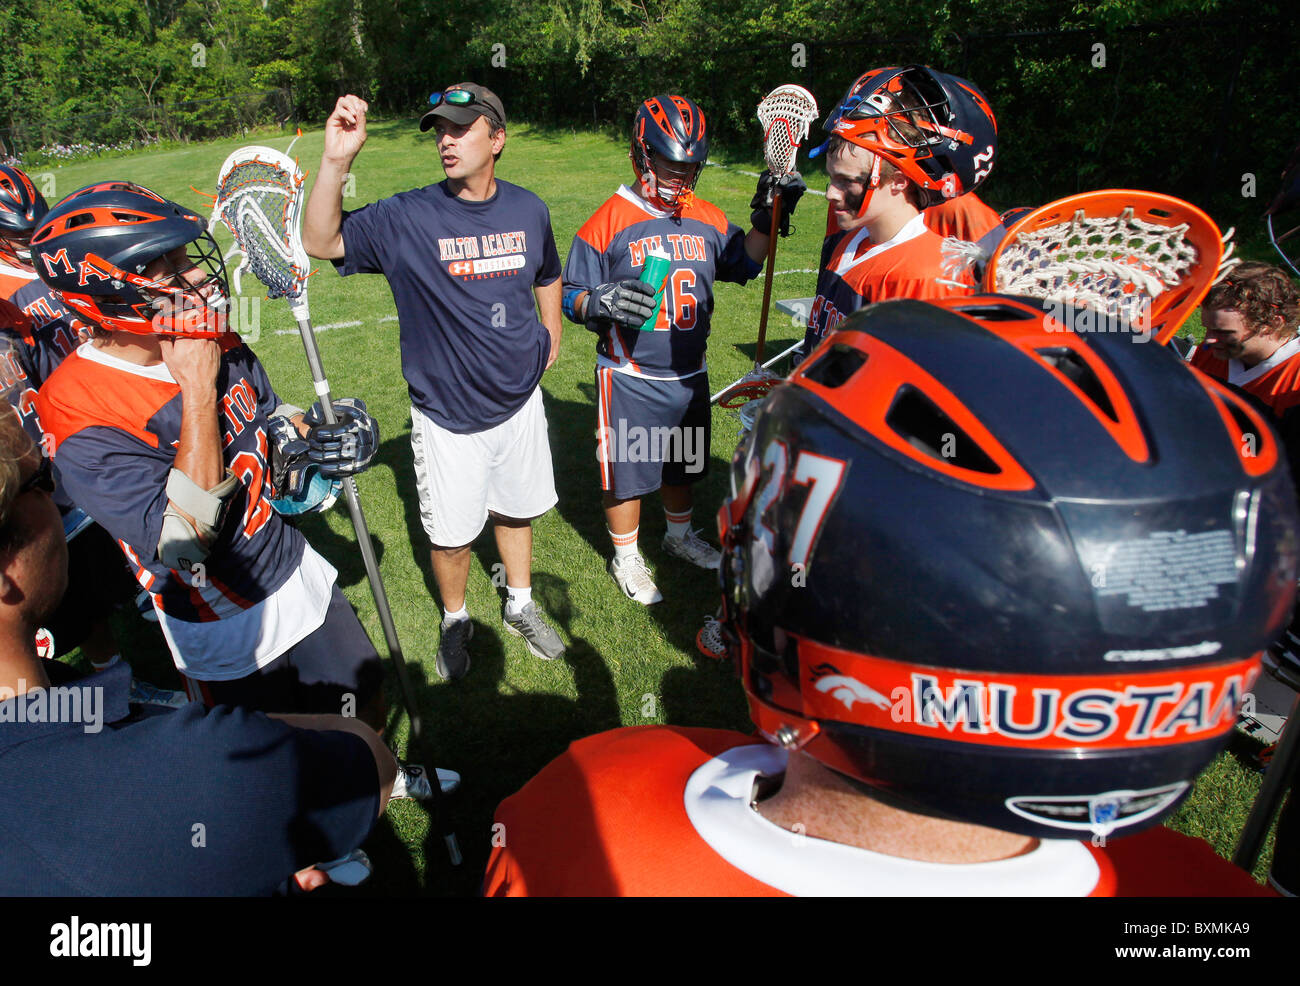 American high school lacrosse team and coach - Stock Image